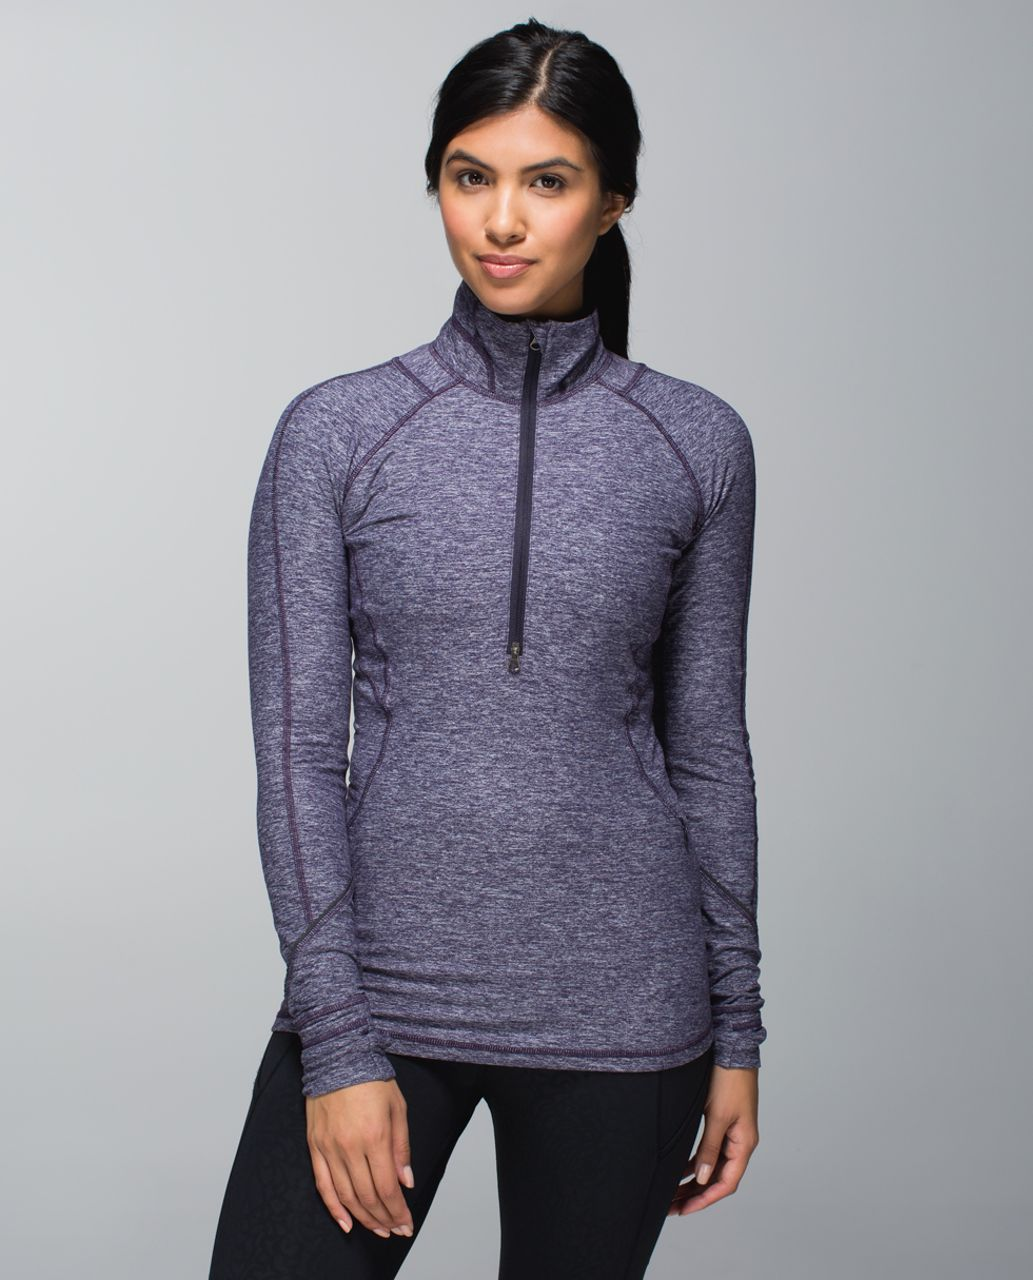 Lululemon Race Your Pace 1 2 Zip Heathered Black Grape